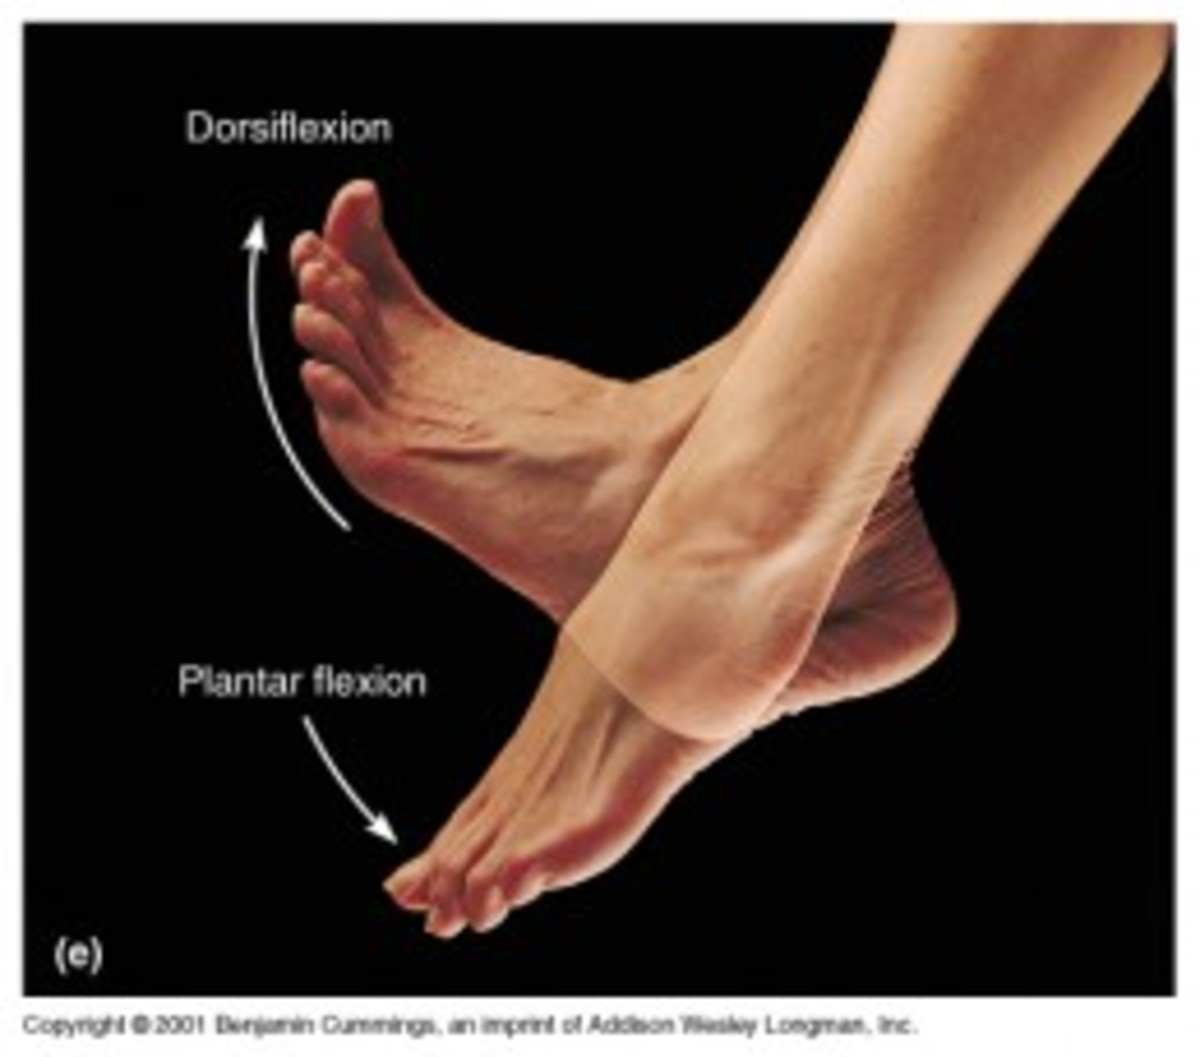 Difference in Plantarflexion and Dorsiflexion